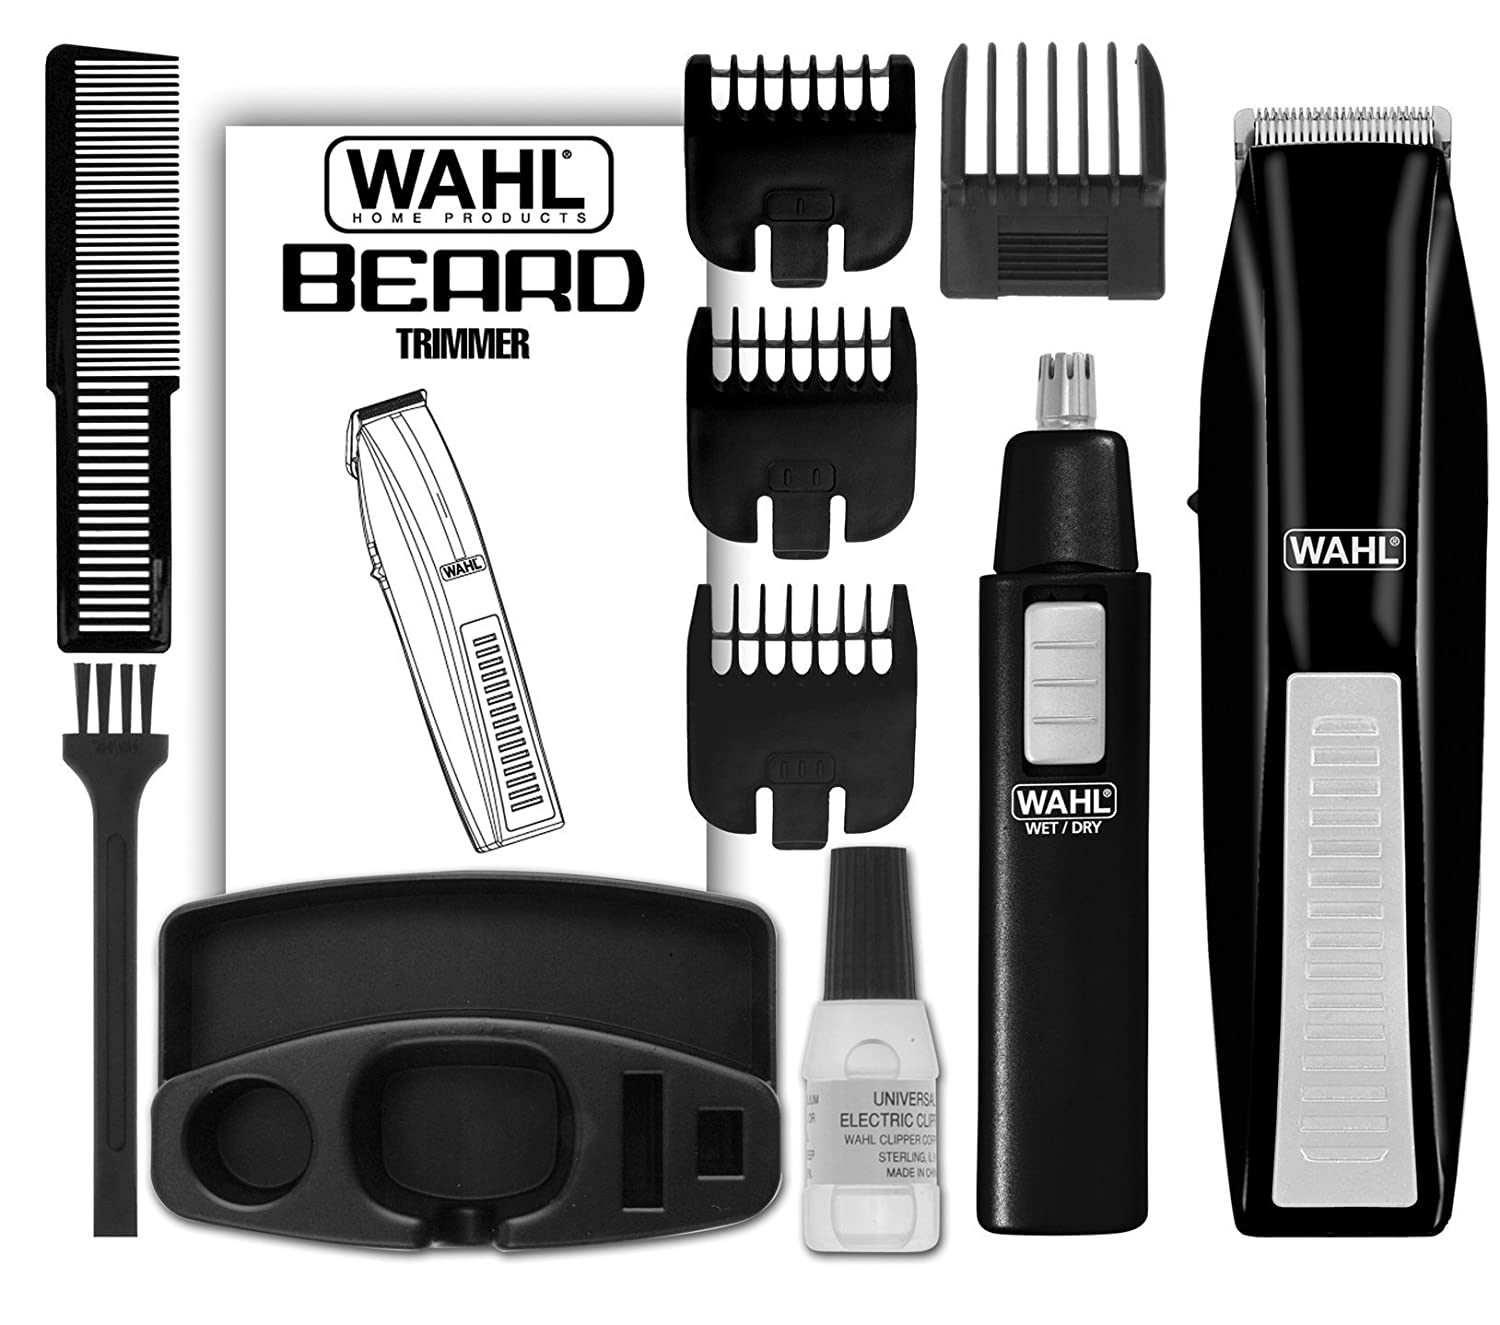 10 best electric shavers razors for men in 2016 2017 best 10 for everything. Black Bedroom Furniture Sets. Home Design Ideas